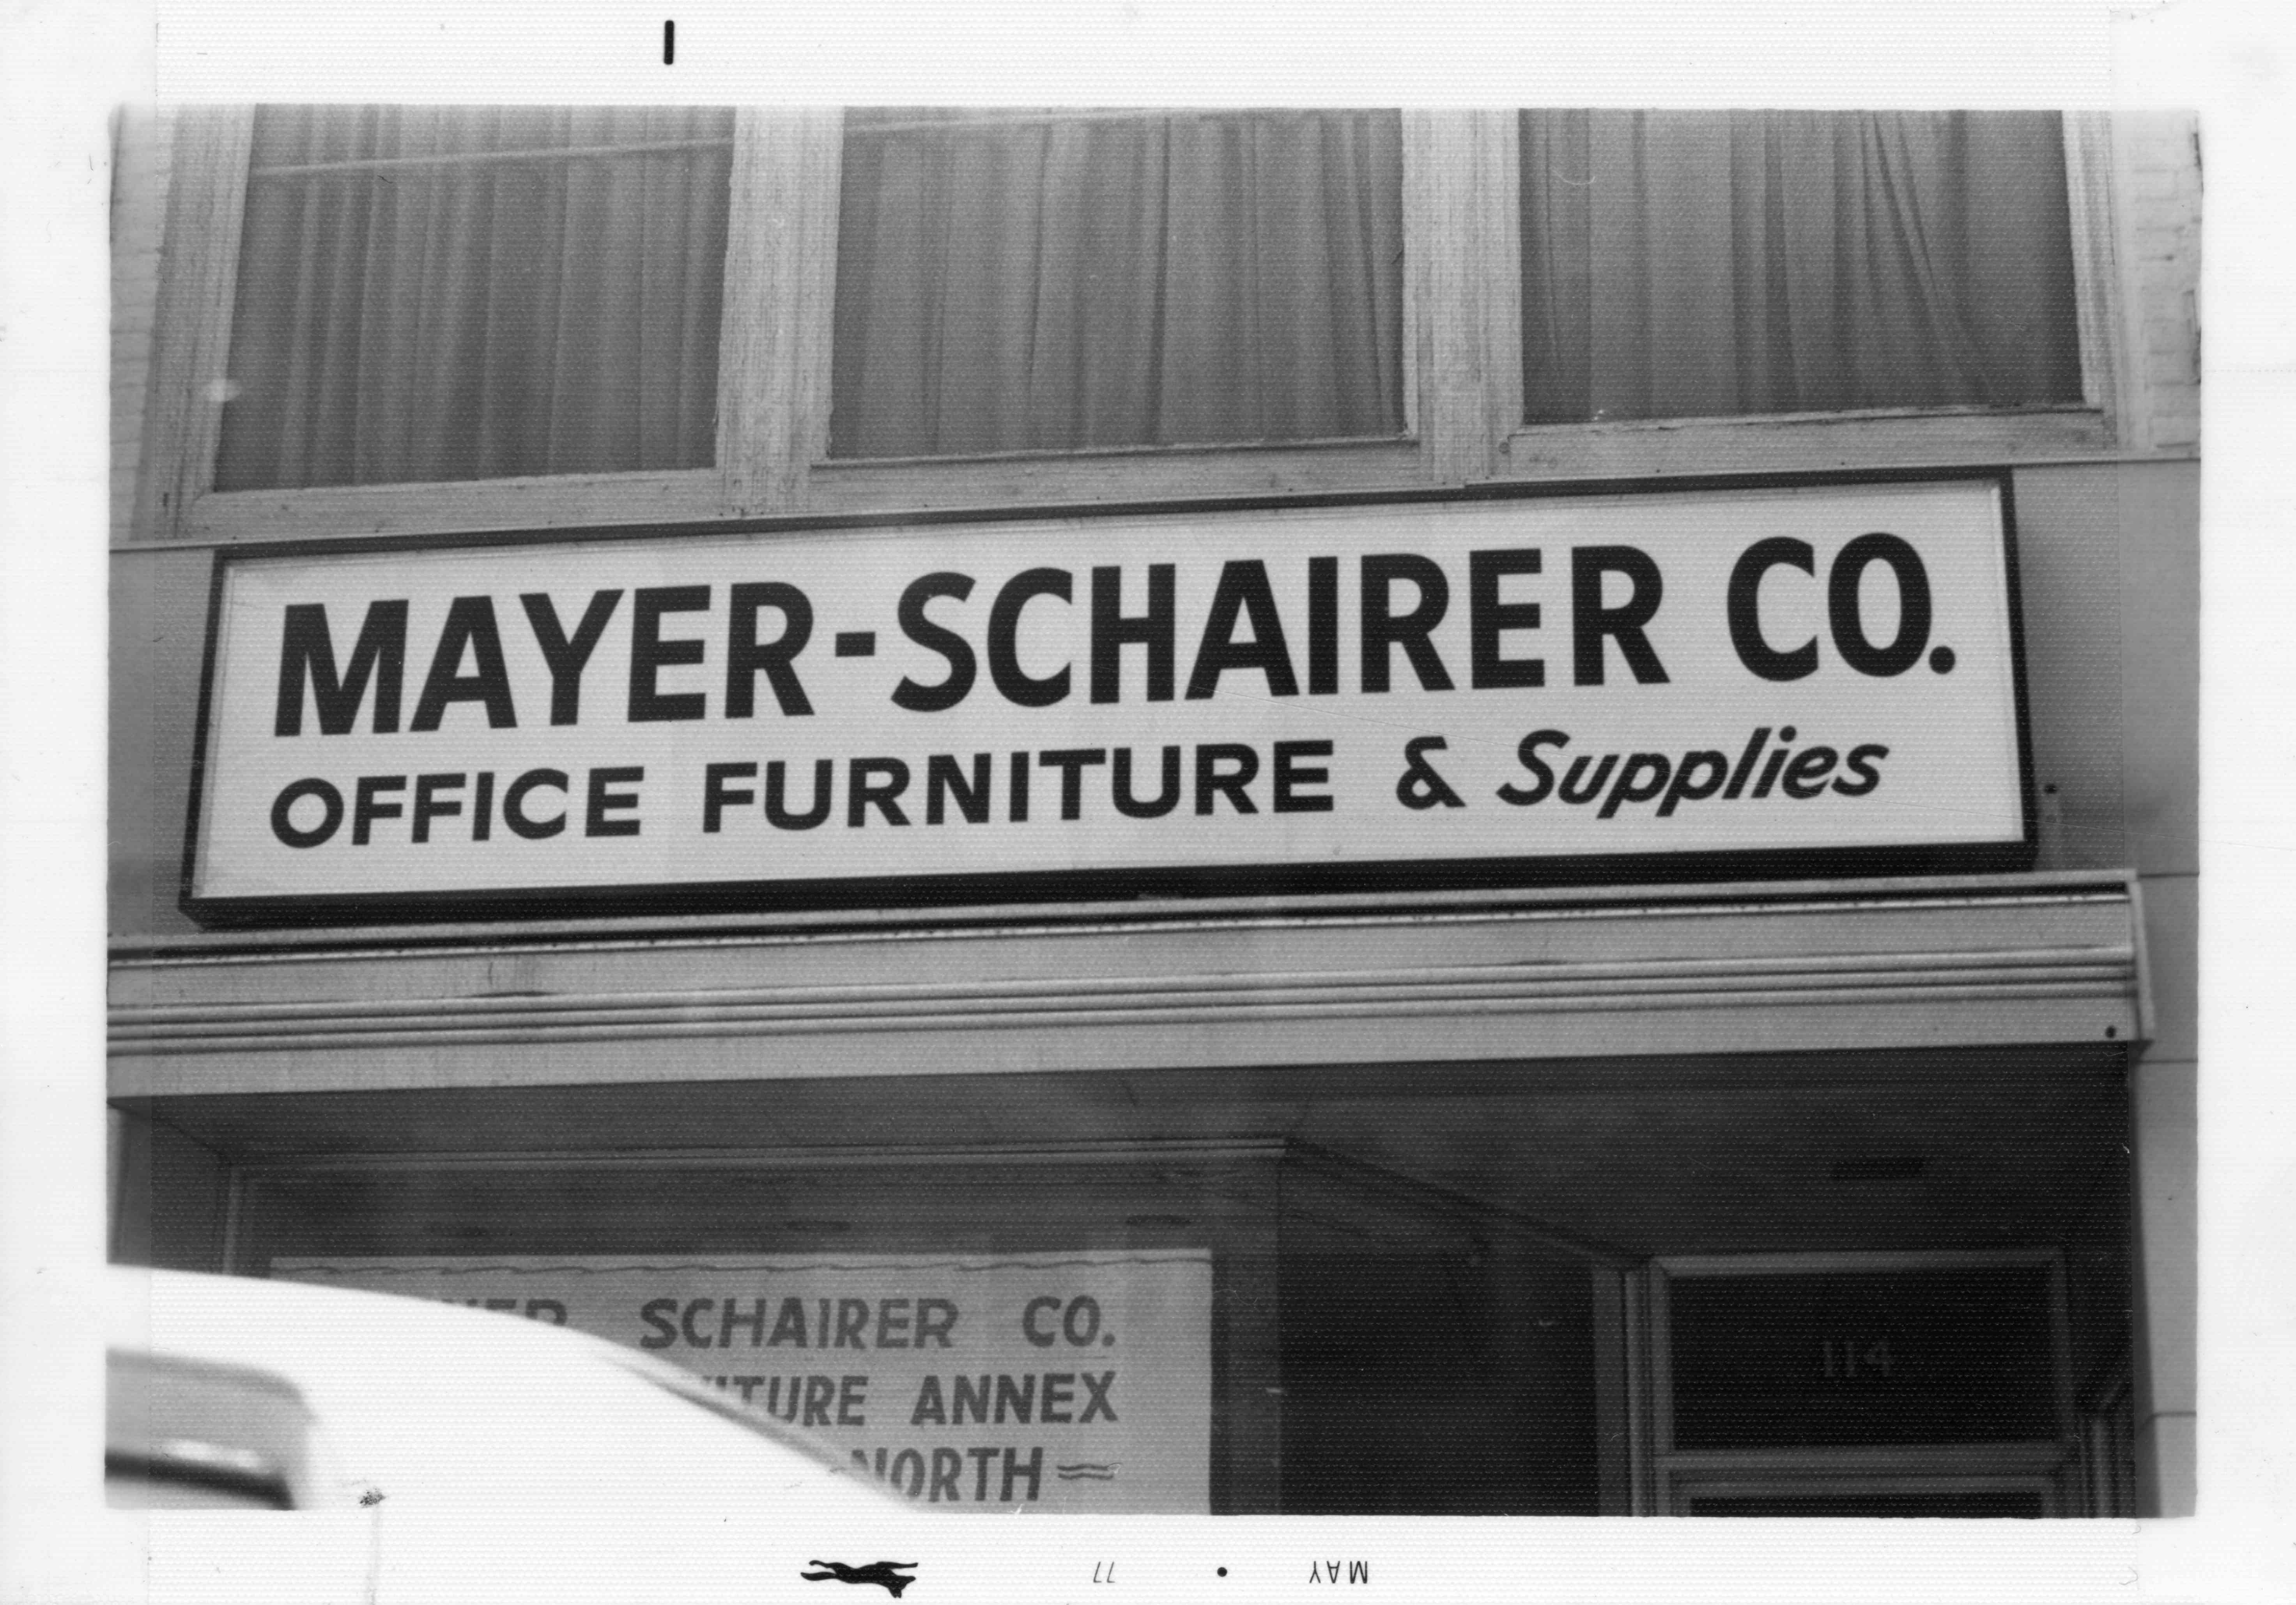 Mayer Schairer Company, 1977 image